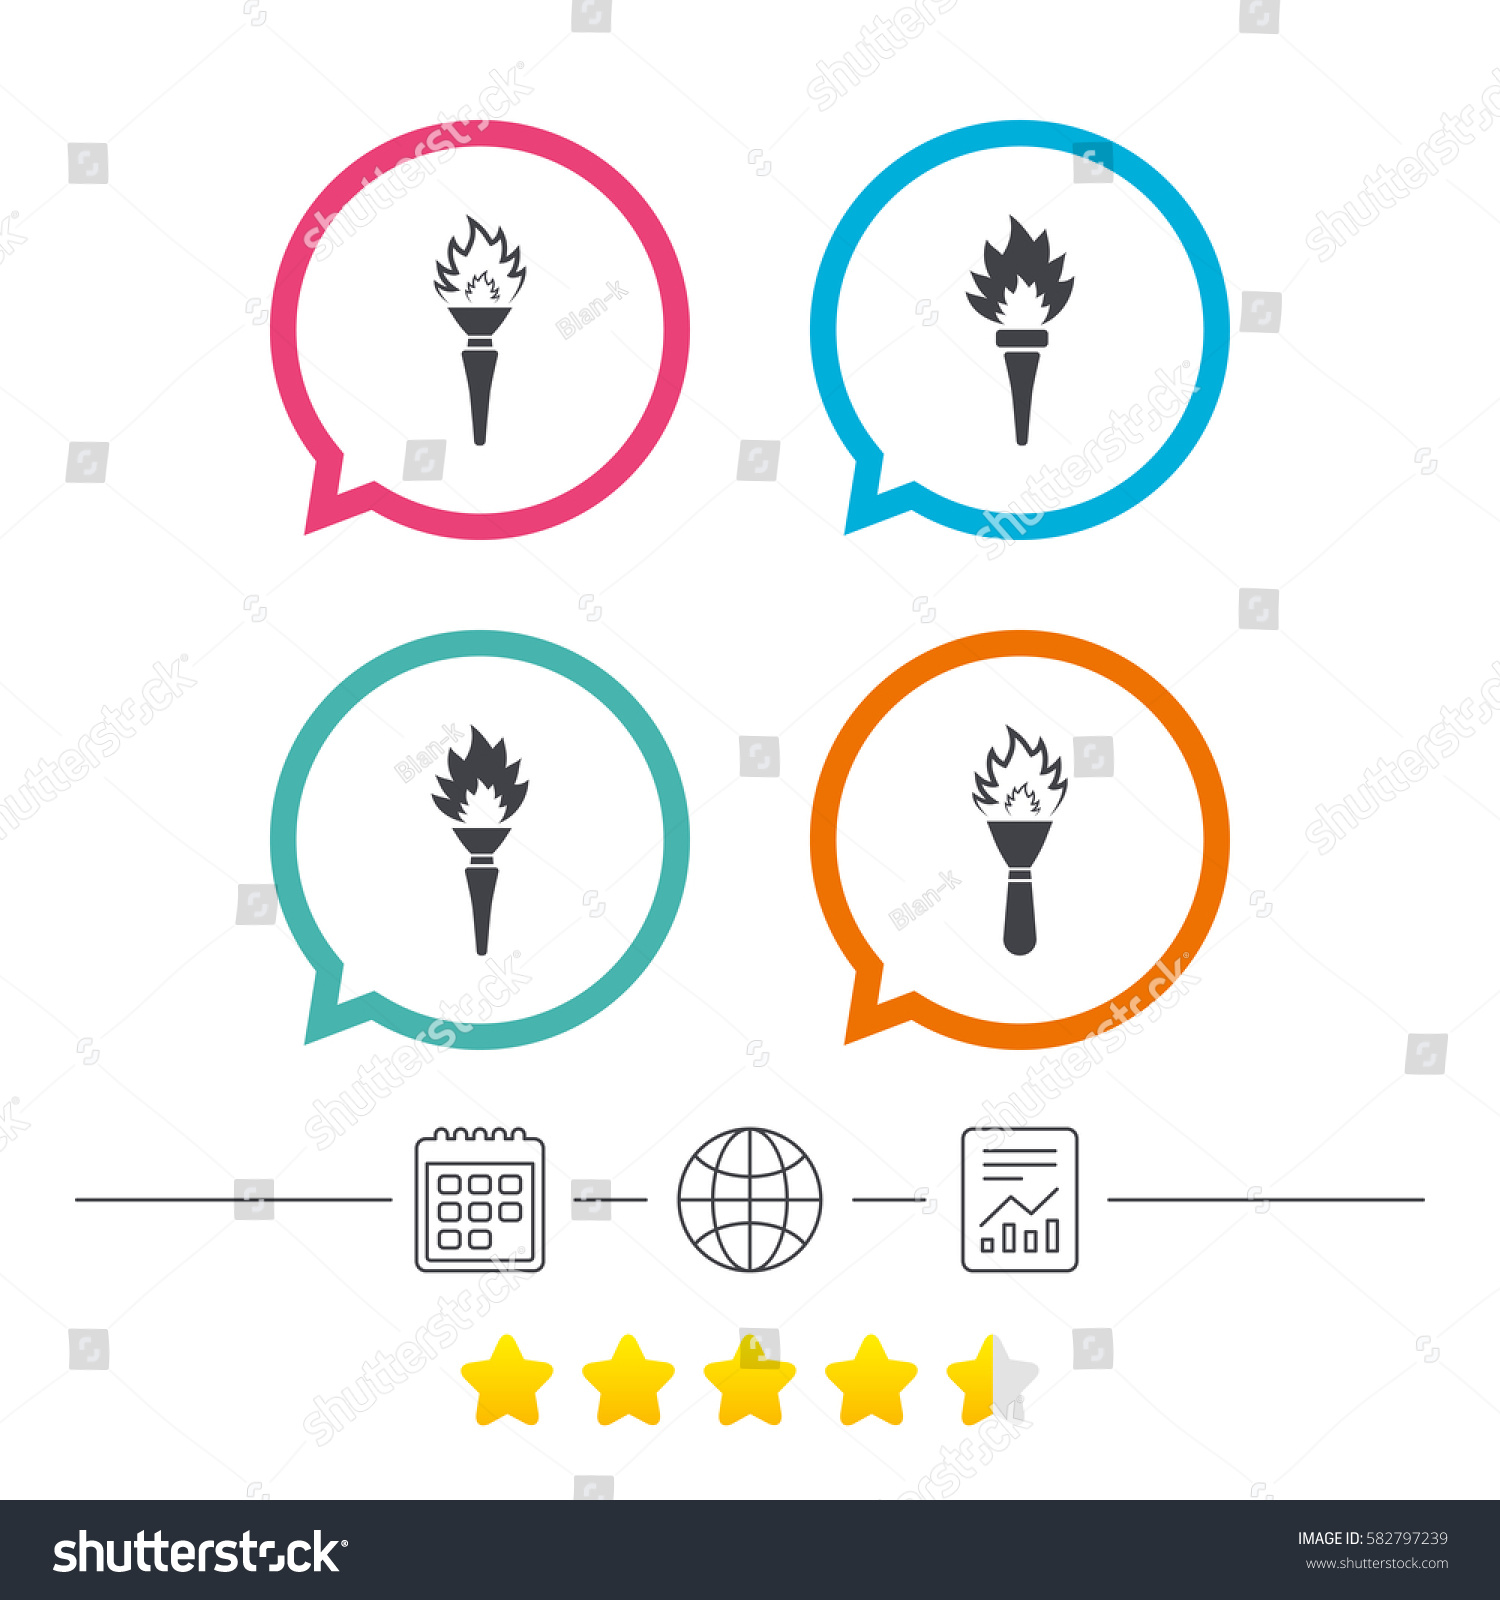 Torch flame icons. Fire flaming symbols. Hand tool which provides light or heat.  sc 1 st  Shutterstock & Torch Flame Icons Fire Flaming Symbols Stock Vector 582797239 ... azcodes.com